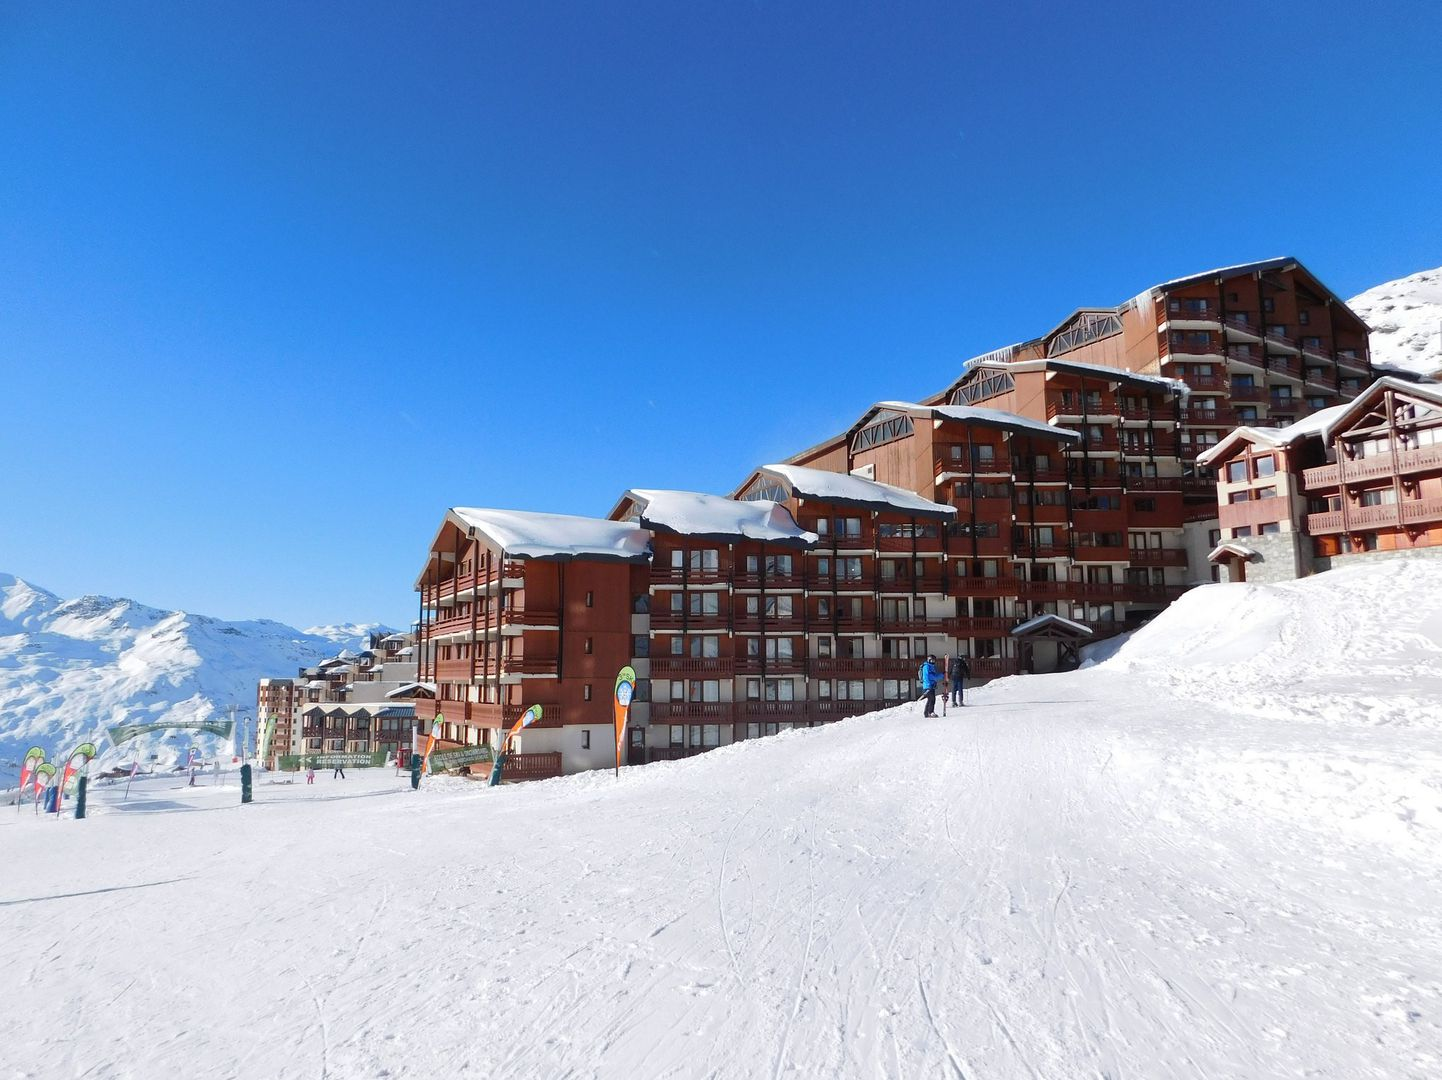 Chambre D Hote Chamrousse Isère Ski Chalets And Apartments J2ski